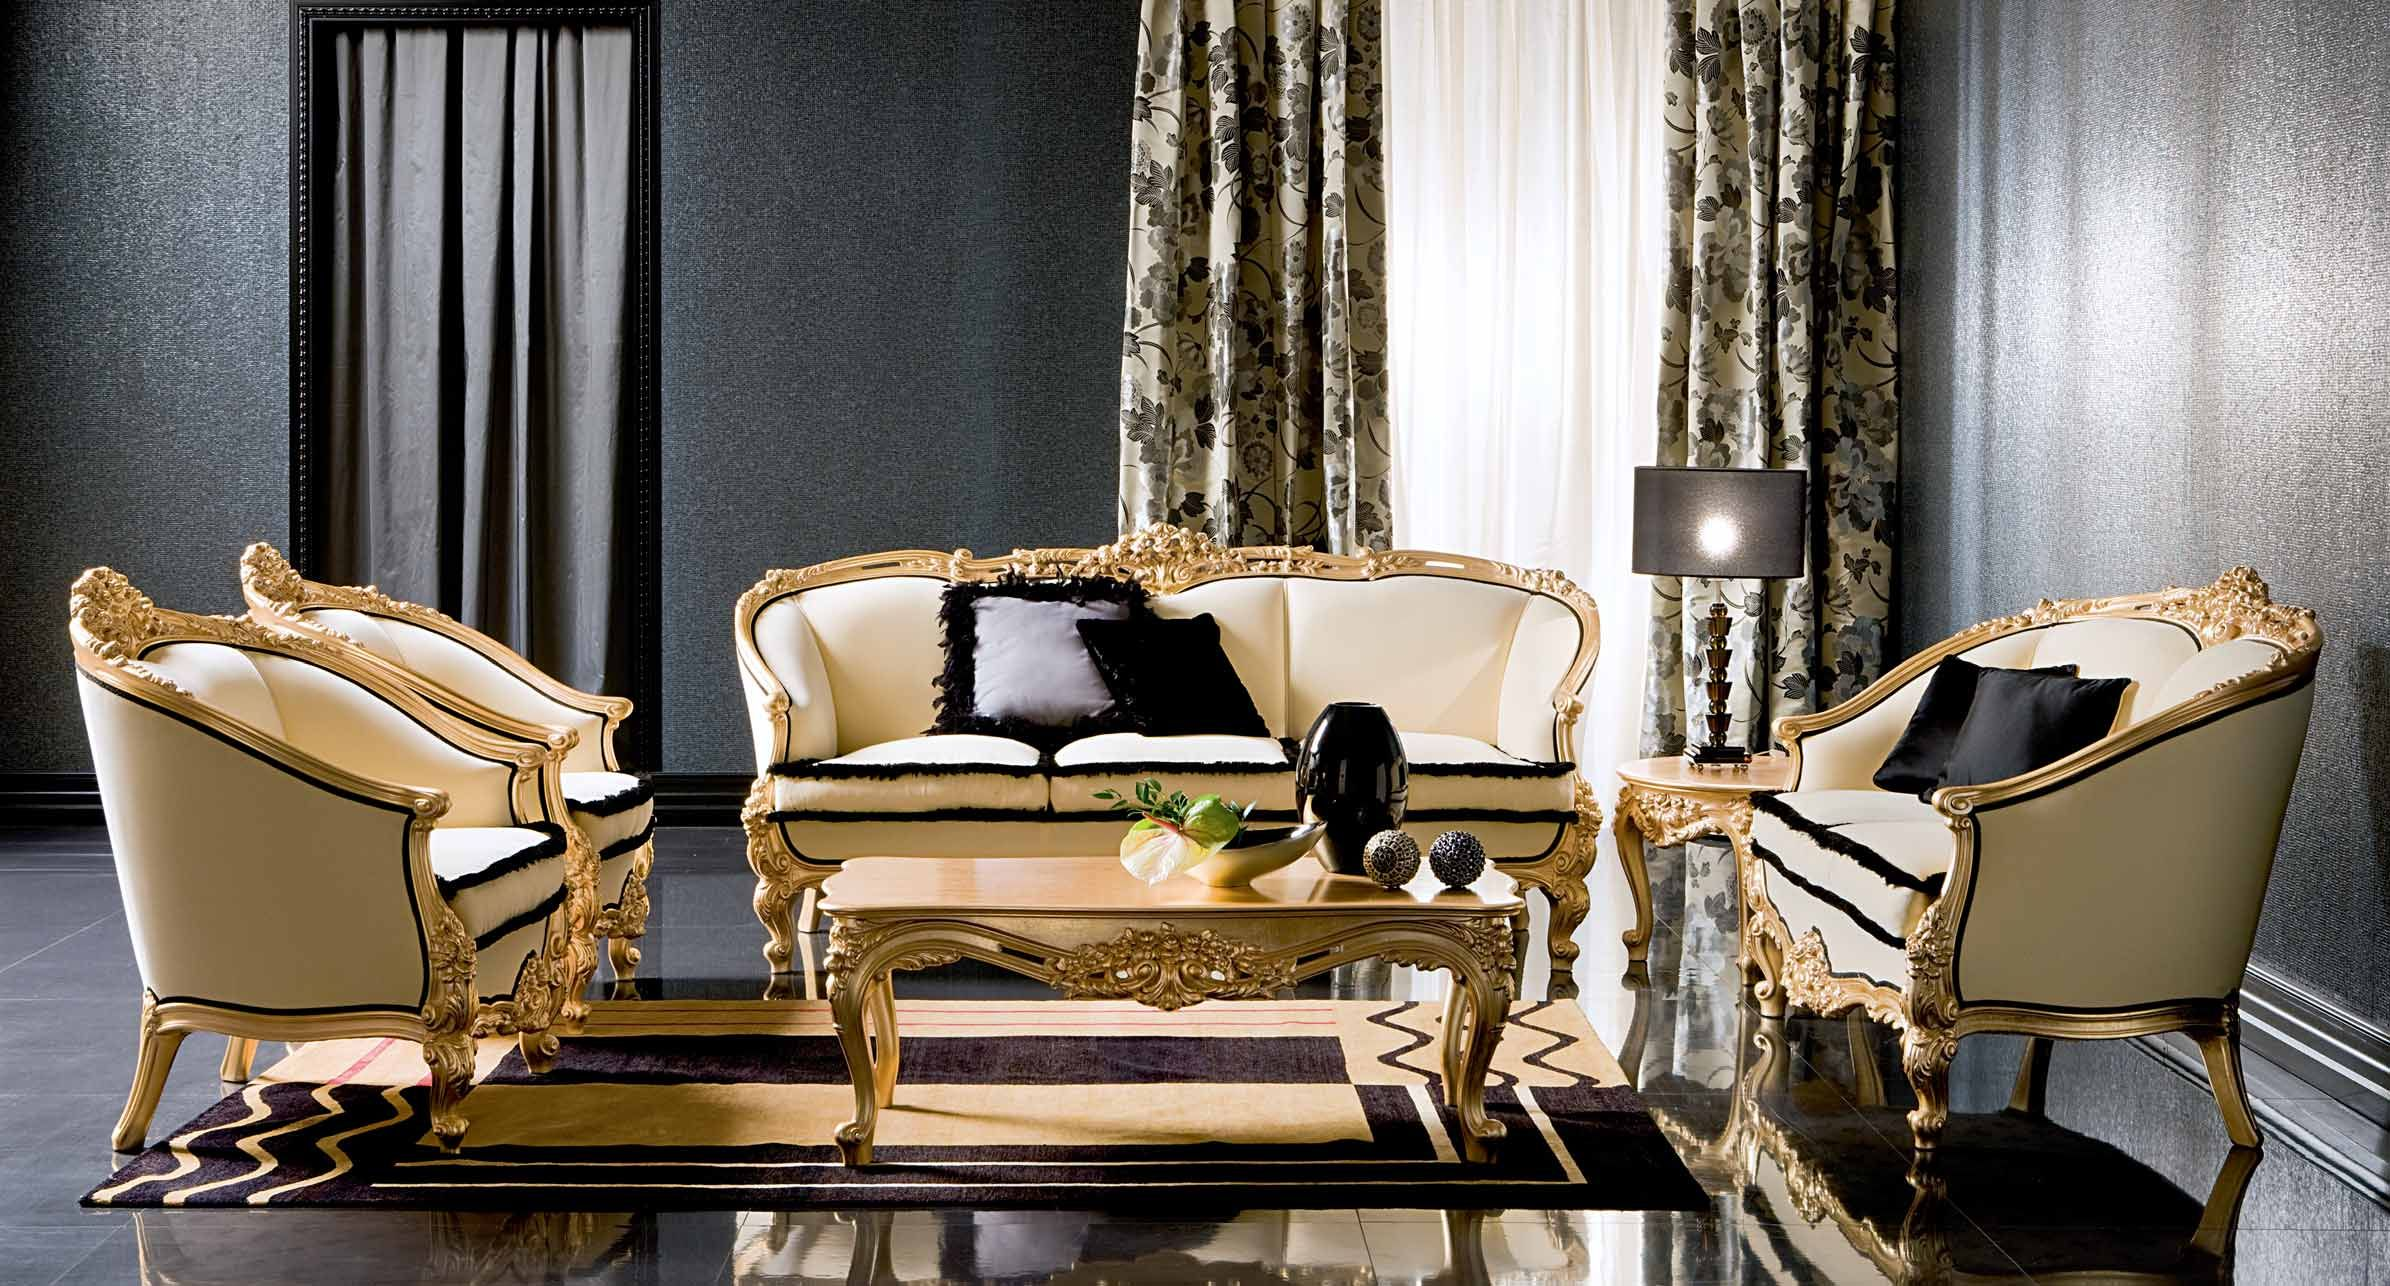 Luxury Furniture Stores Mondital Luxury Italian Furniture Stores London Uk